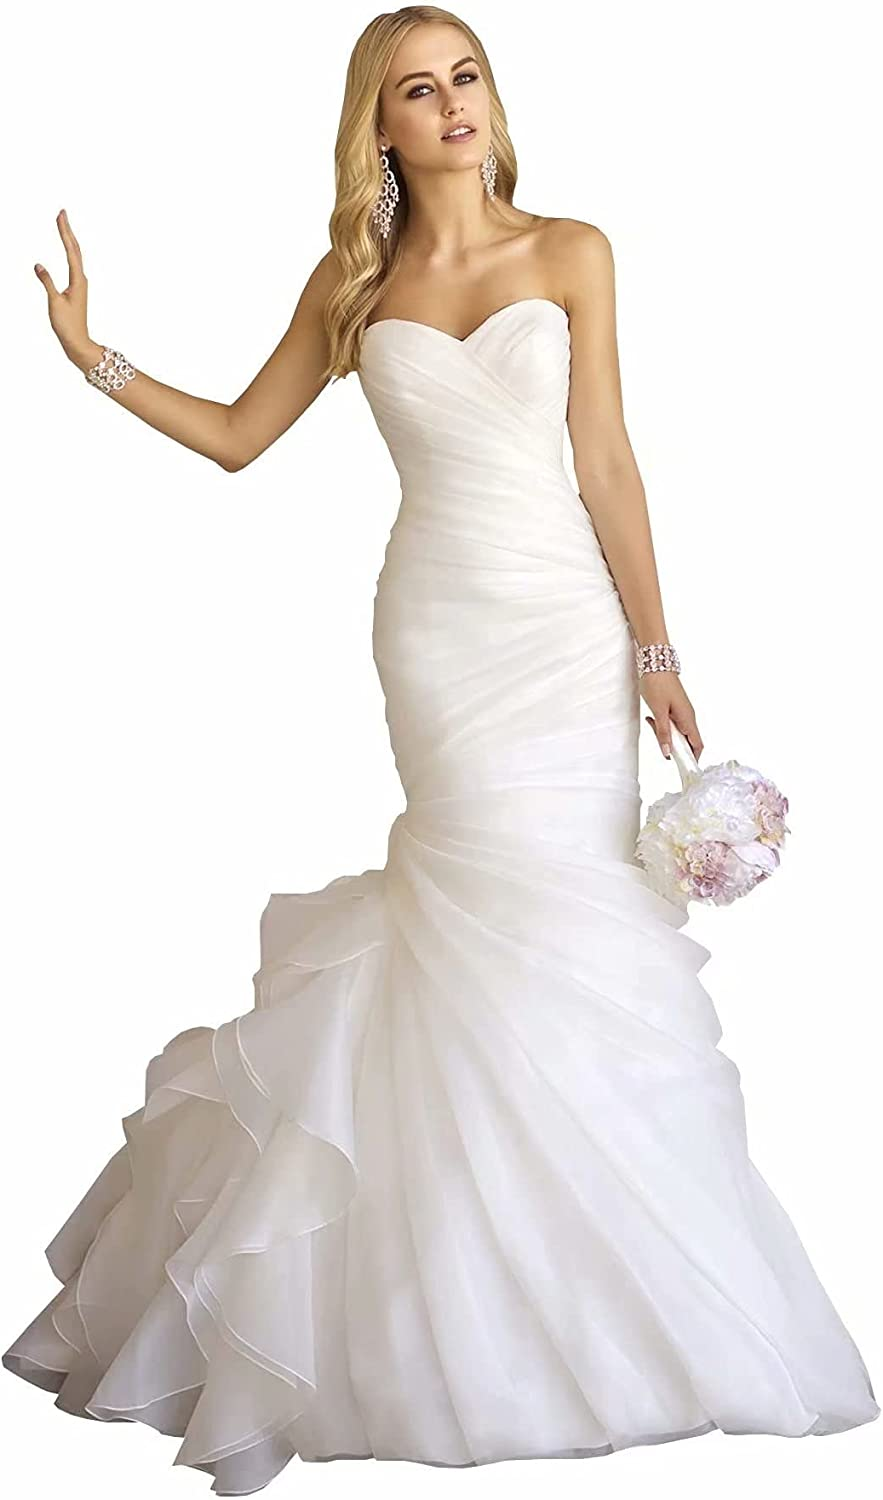 Women's Mermaid Wedding Dress for Bride Sweetheart Ruched Organza Bridal Gown 2021